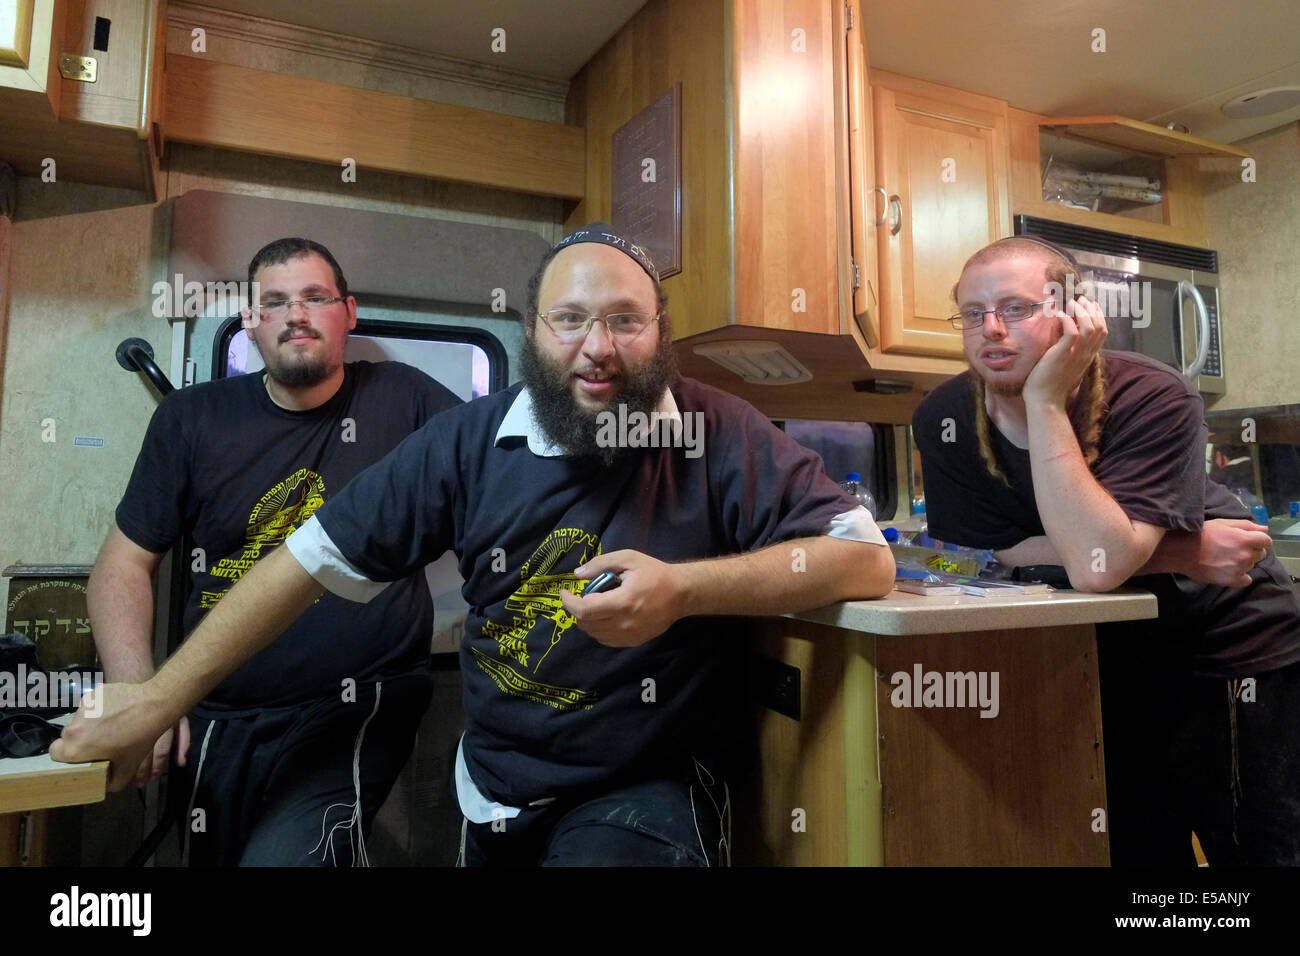 Members of Habad  religious movement in 'Mitzva Tank' van Israel - Stock Image